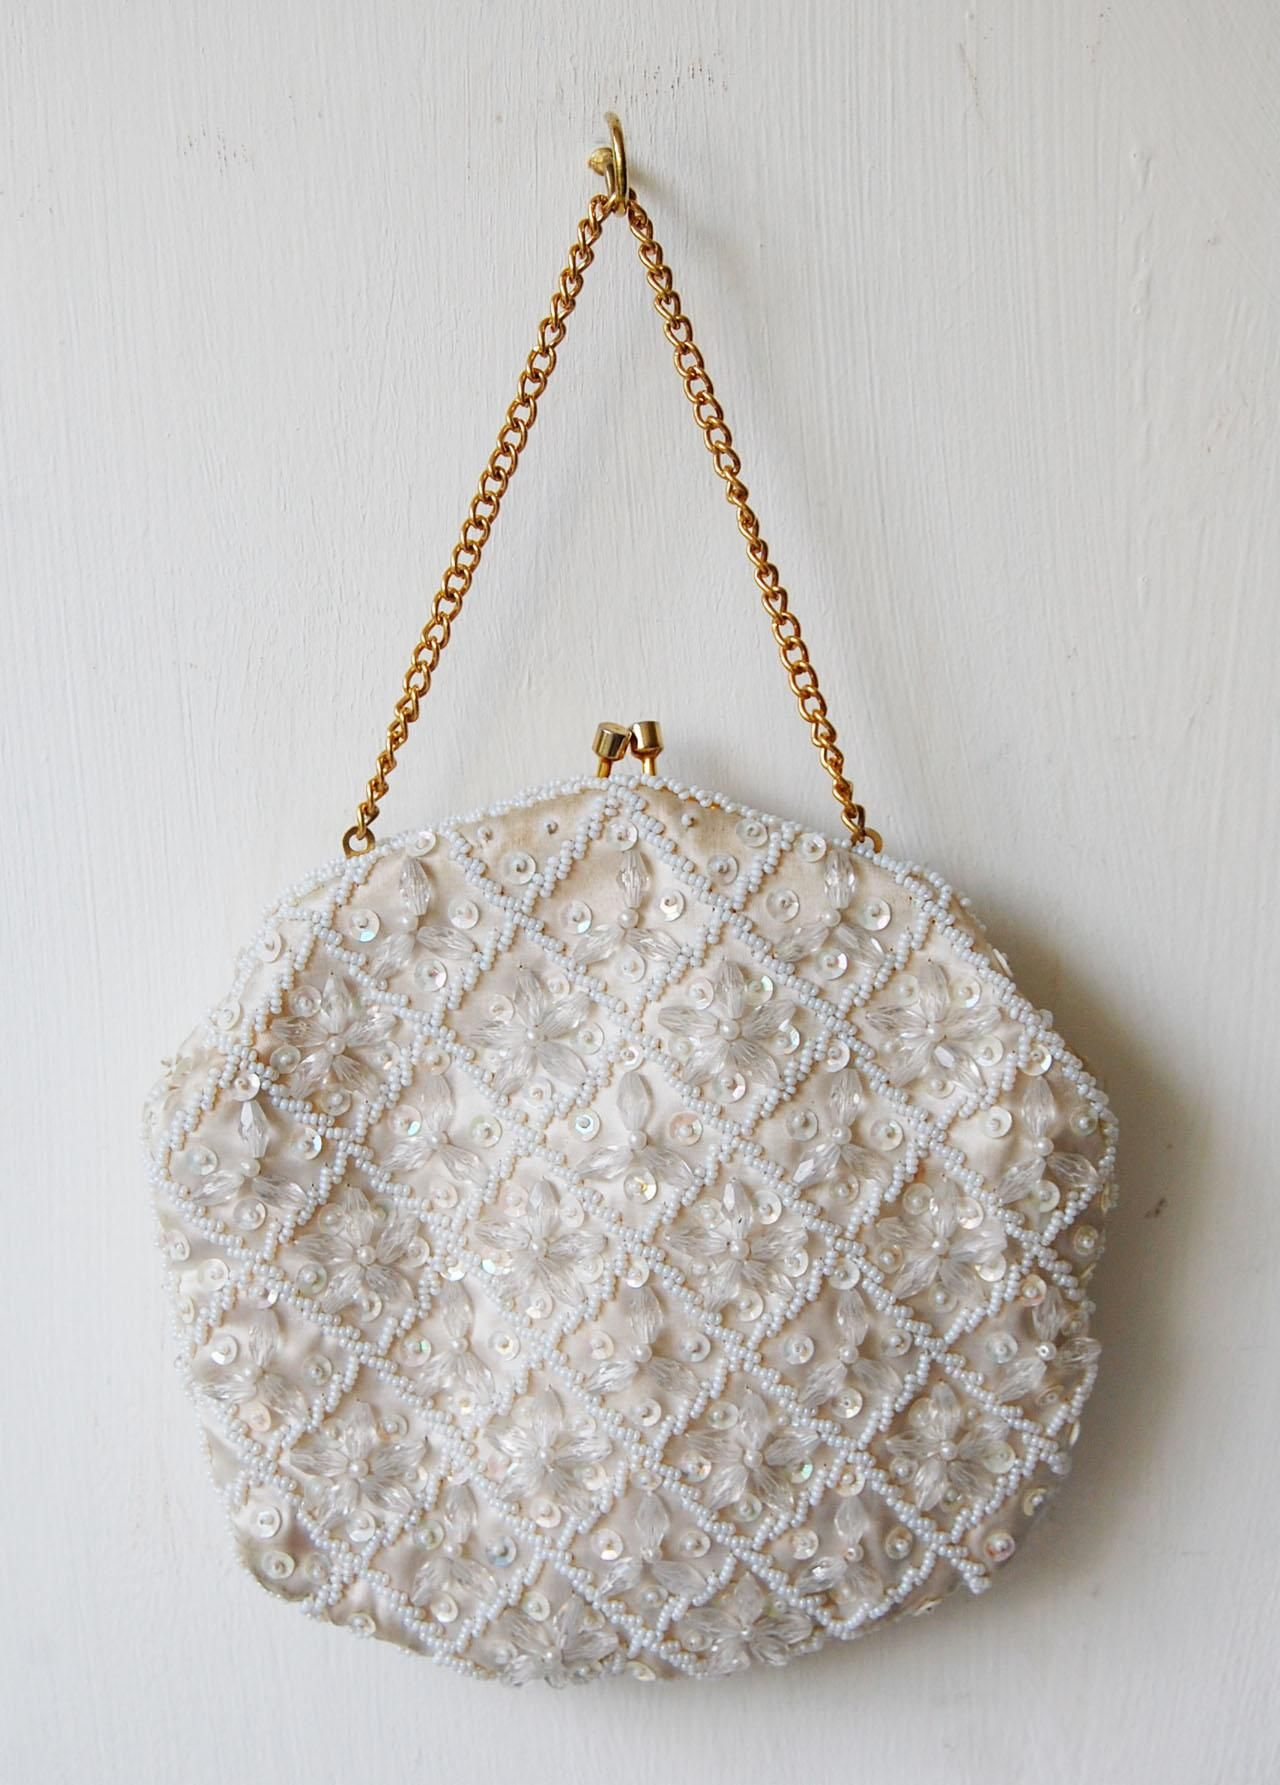 b9c3a5bea8 Vintage Beaded Evening Bags   Home / Off white vintage 60's beaded evening  bag